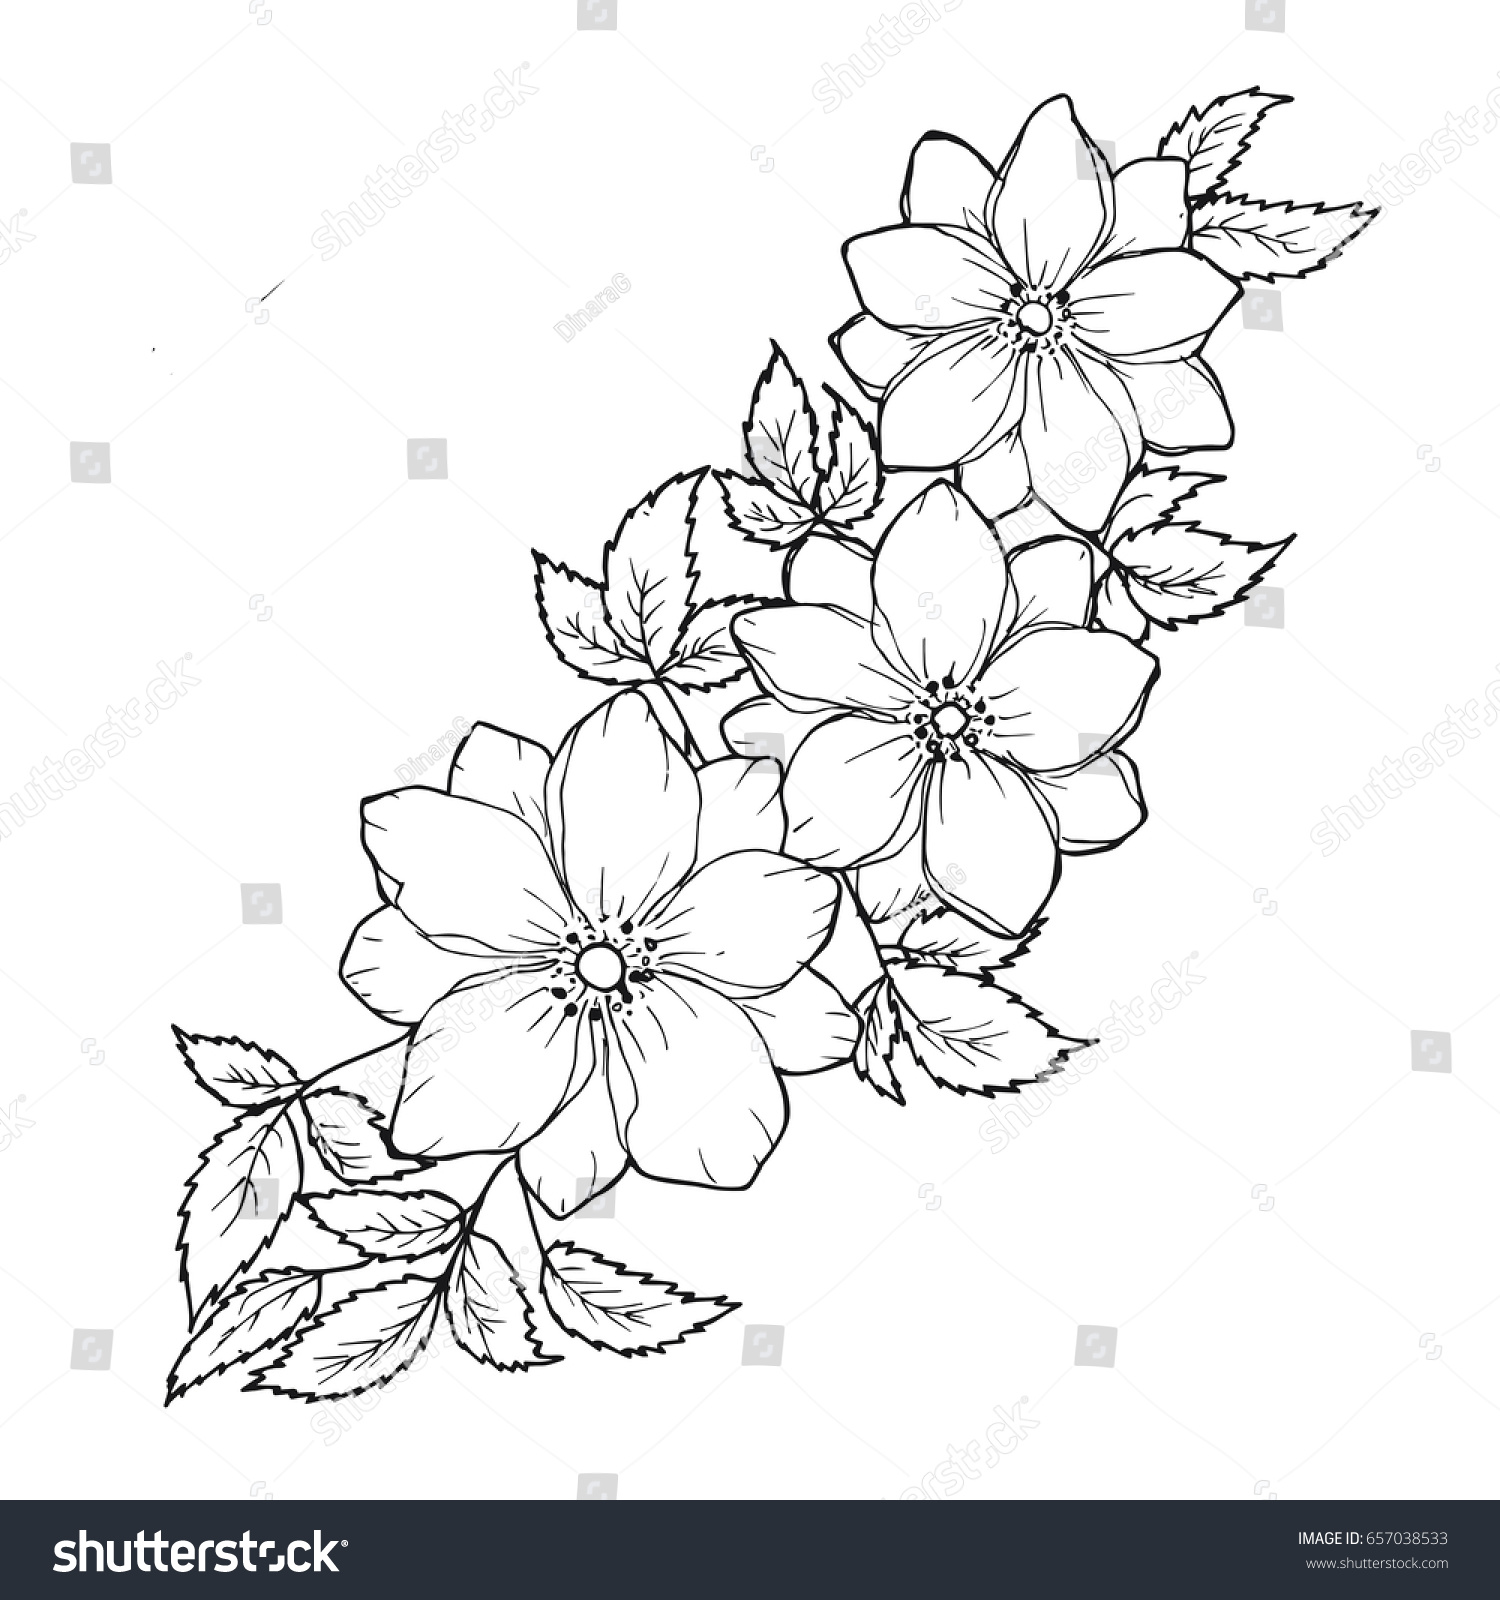 Floral Background Flowers Leaves Black White Stock Illustration